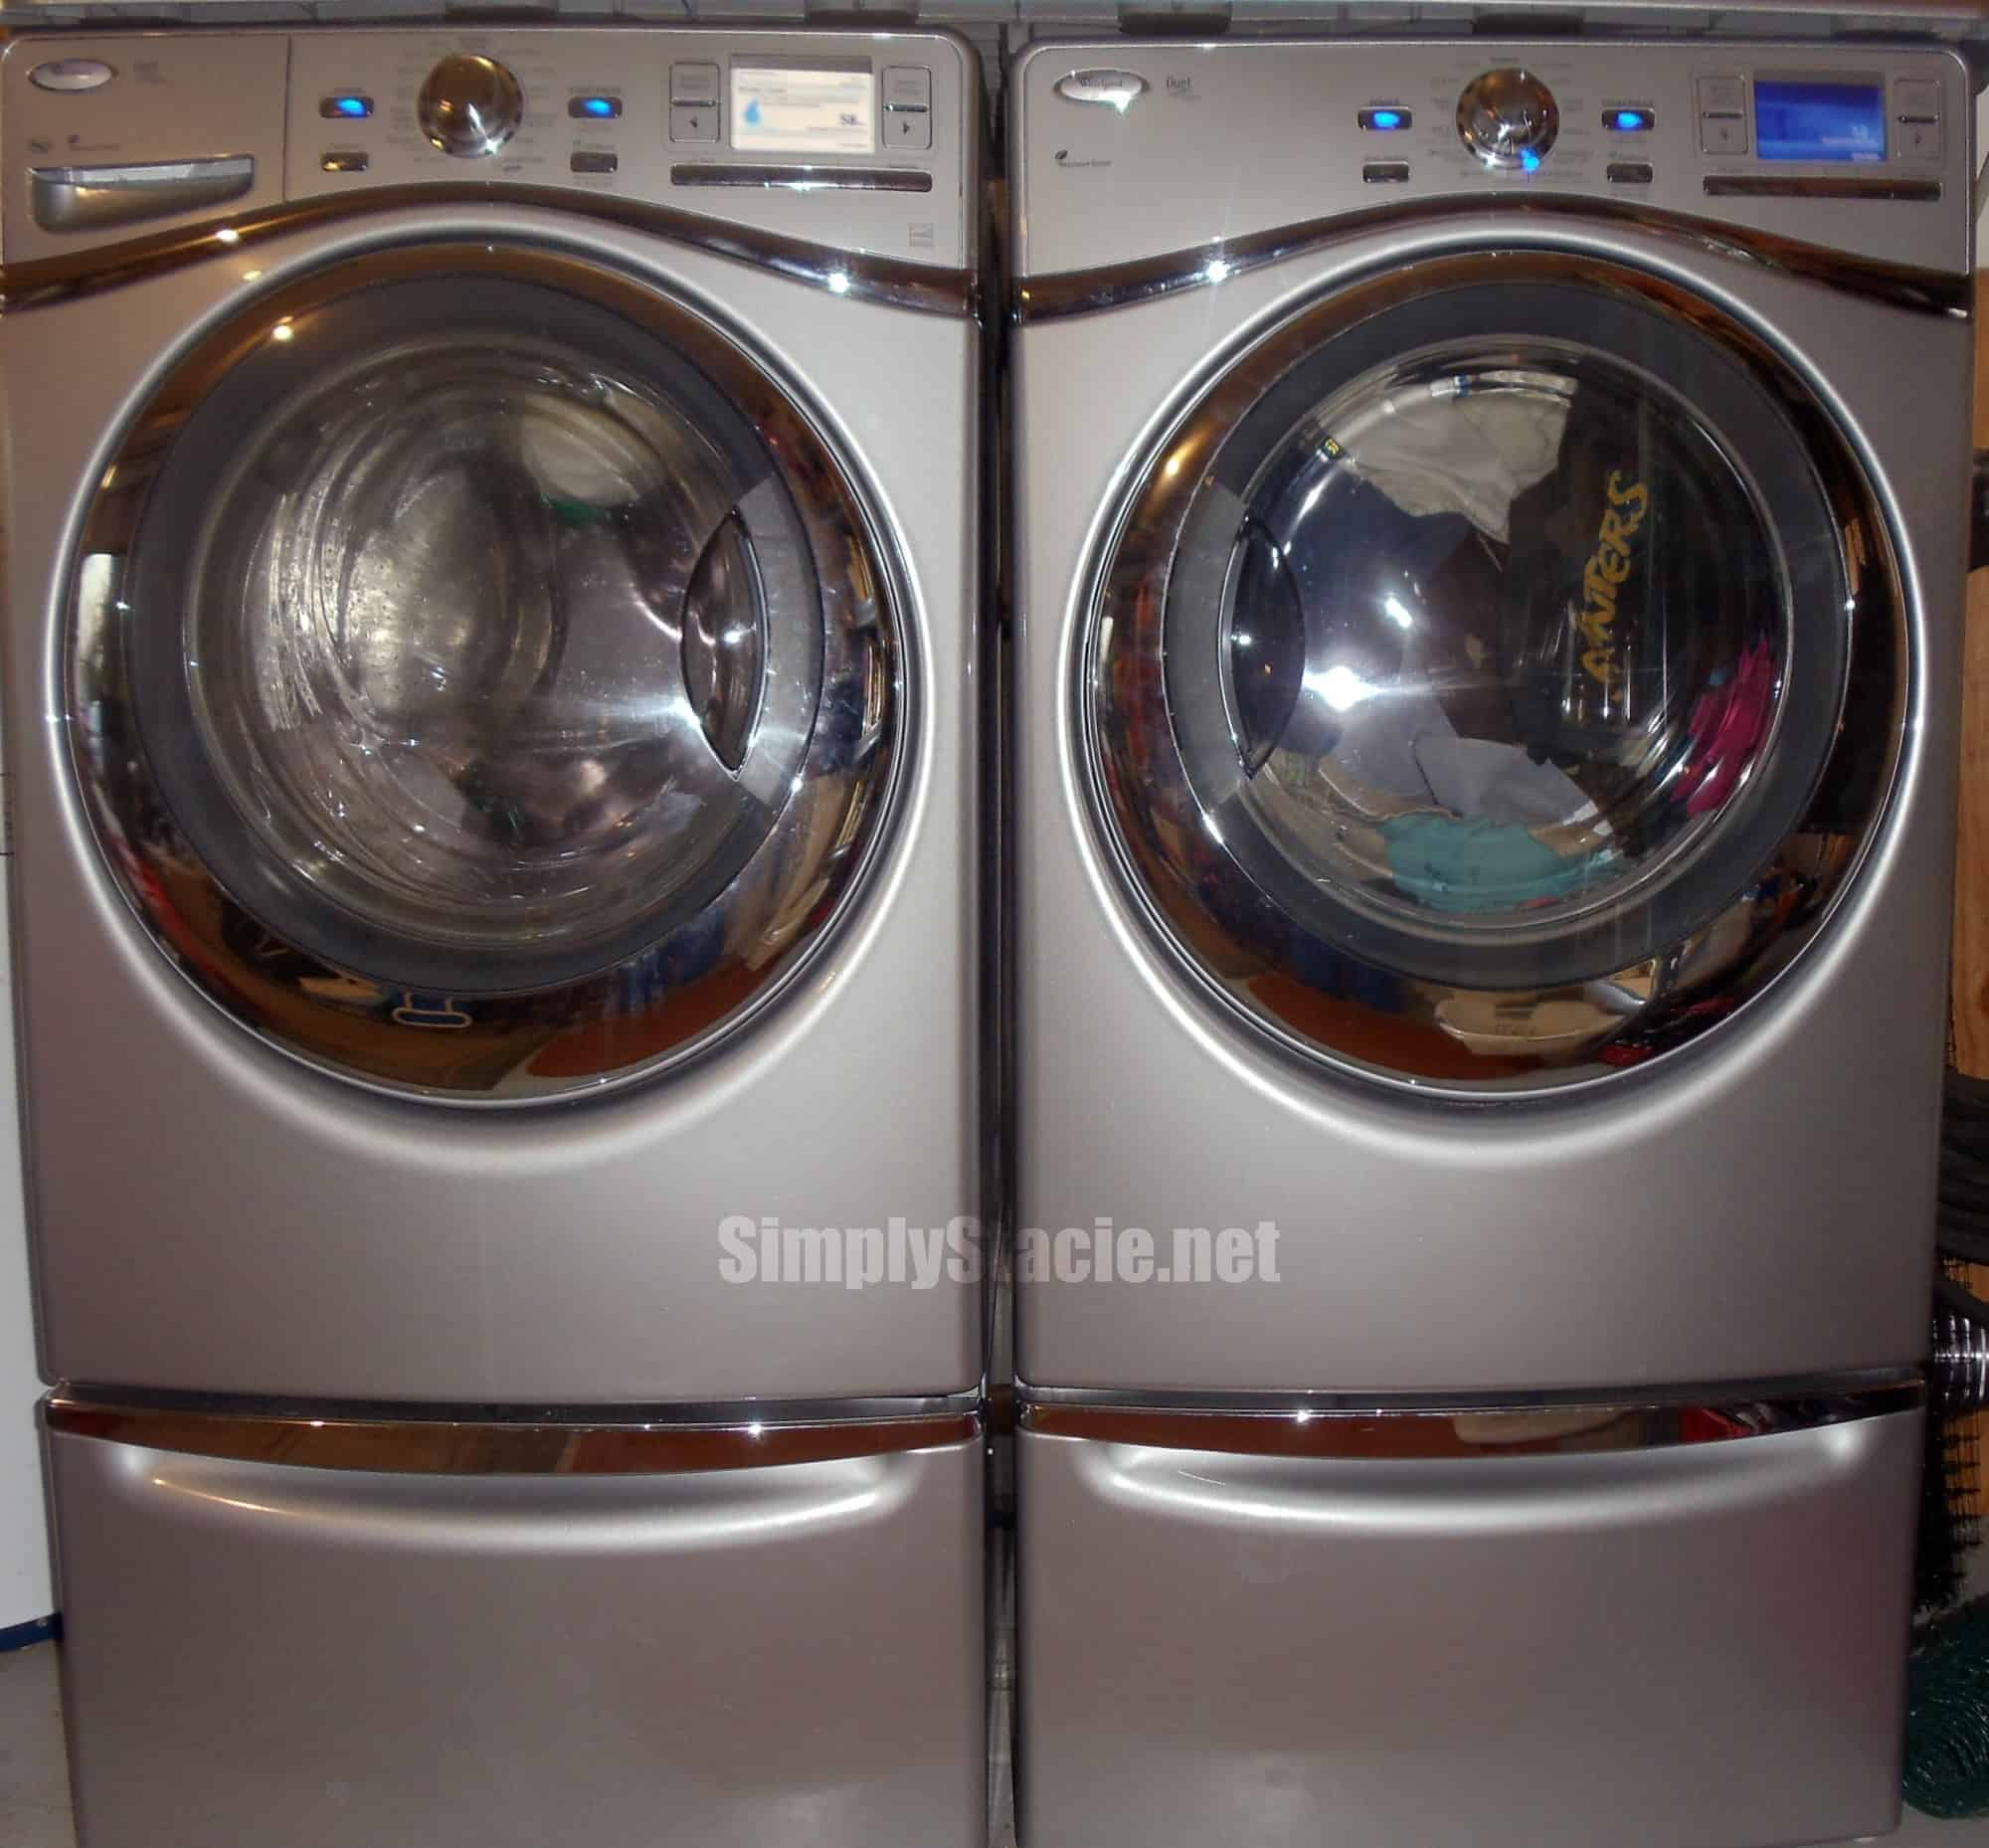 Whirlpool Duet High Efficiency Electric Dryer Review